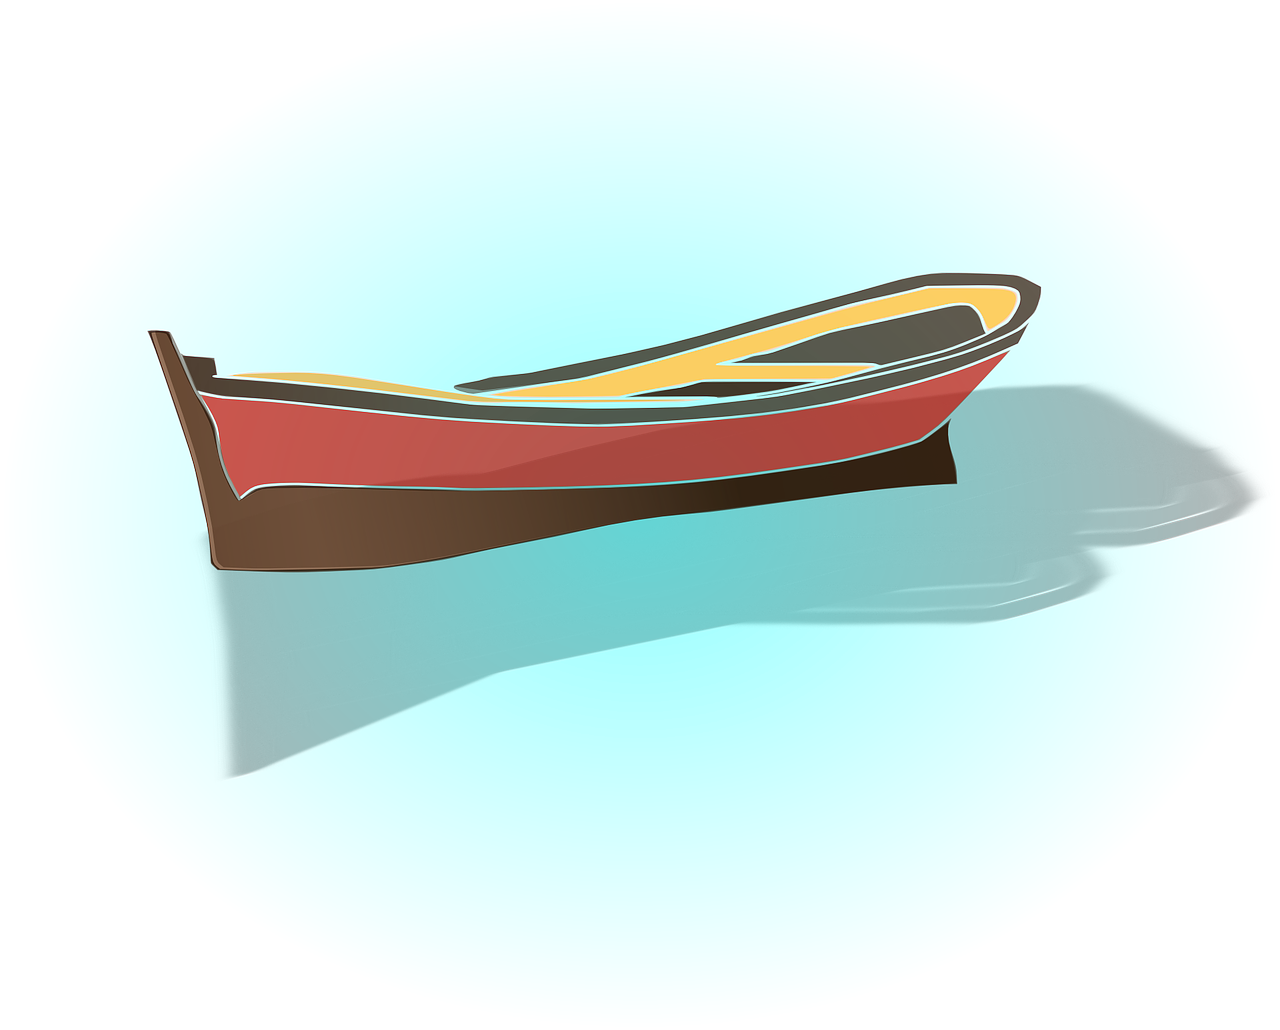 How to draw a boat 9